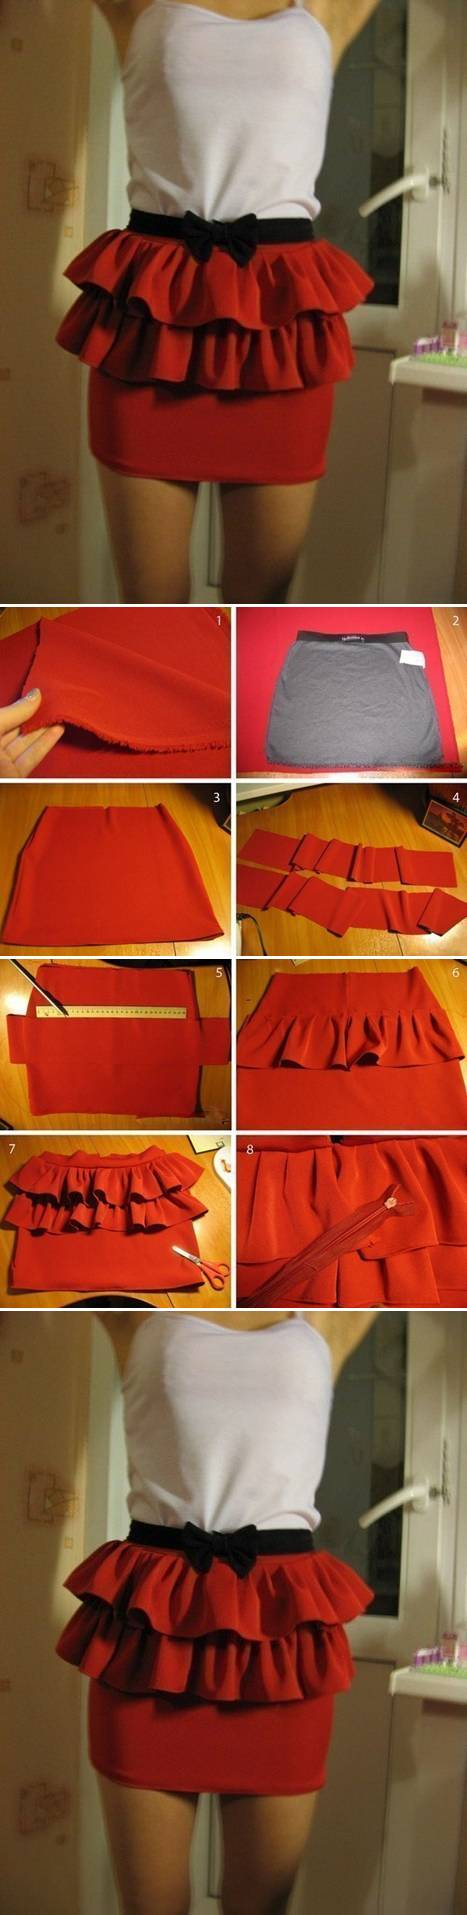 How To do simple Skirt Modification step by step DIY tutorial instructions